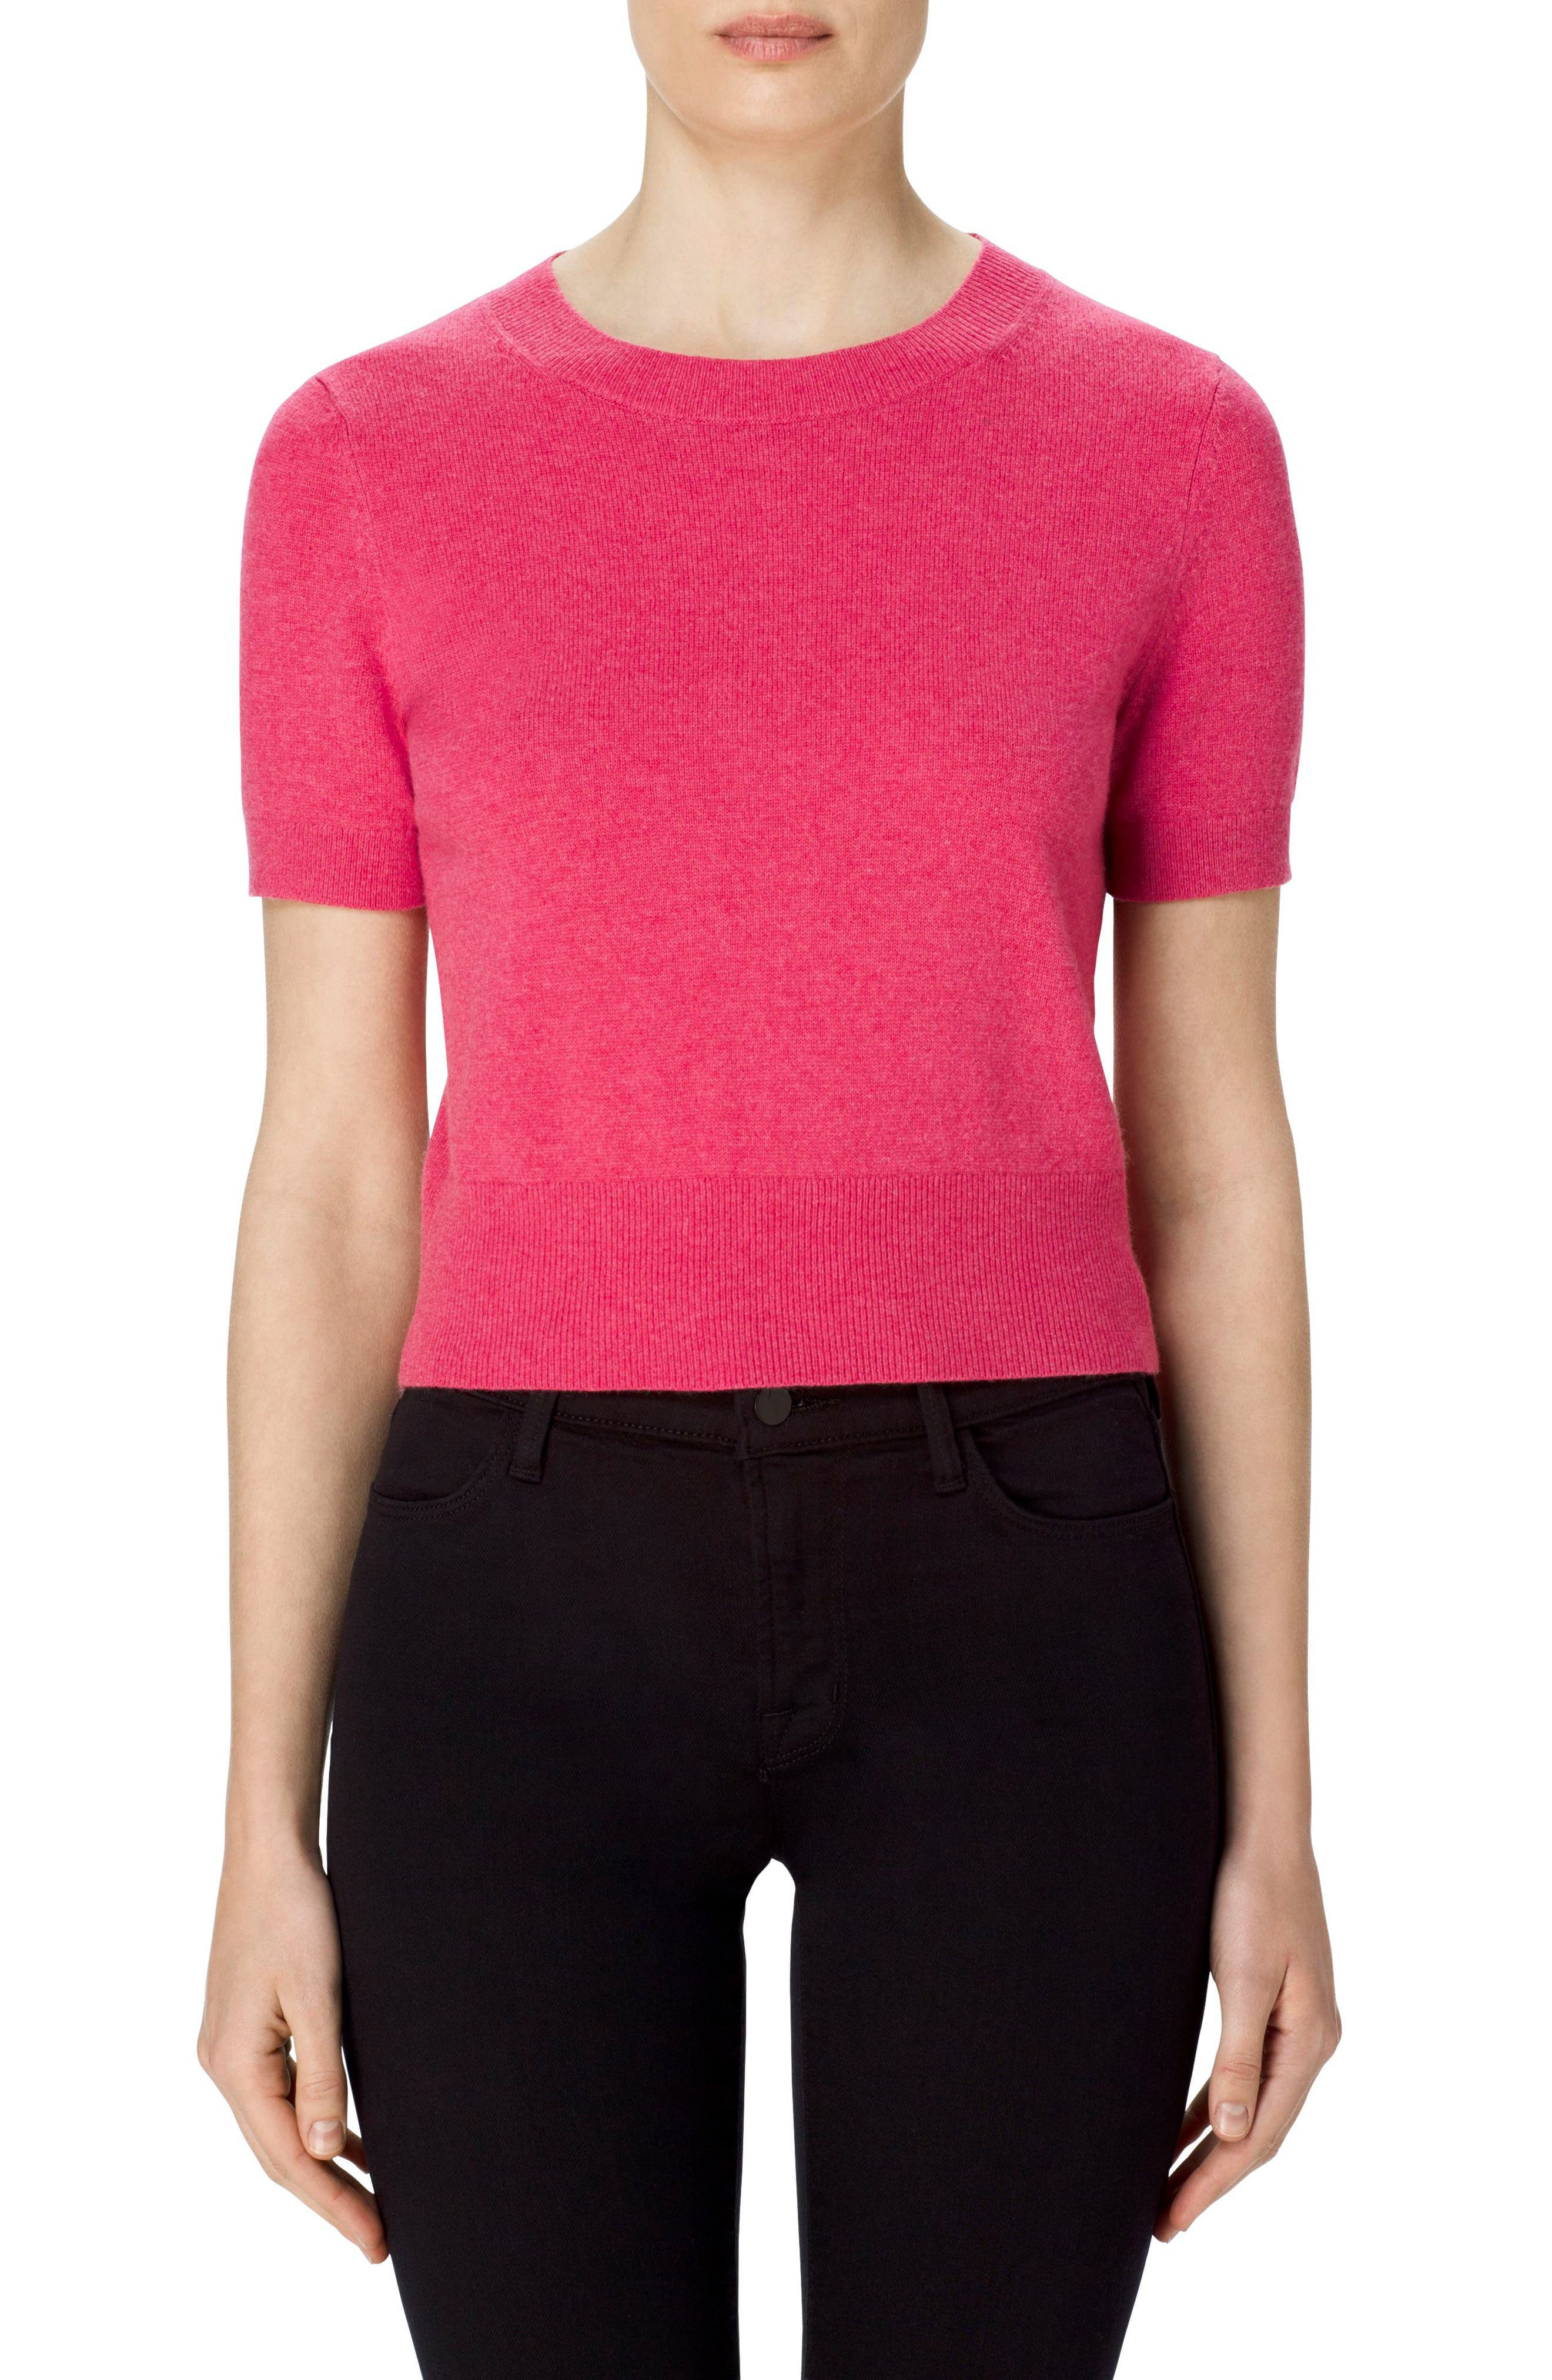 Briony Cashmere Sweater,                             Main thumbnail 1, color,                             824